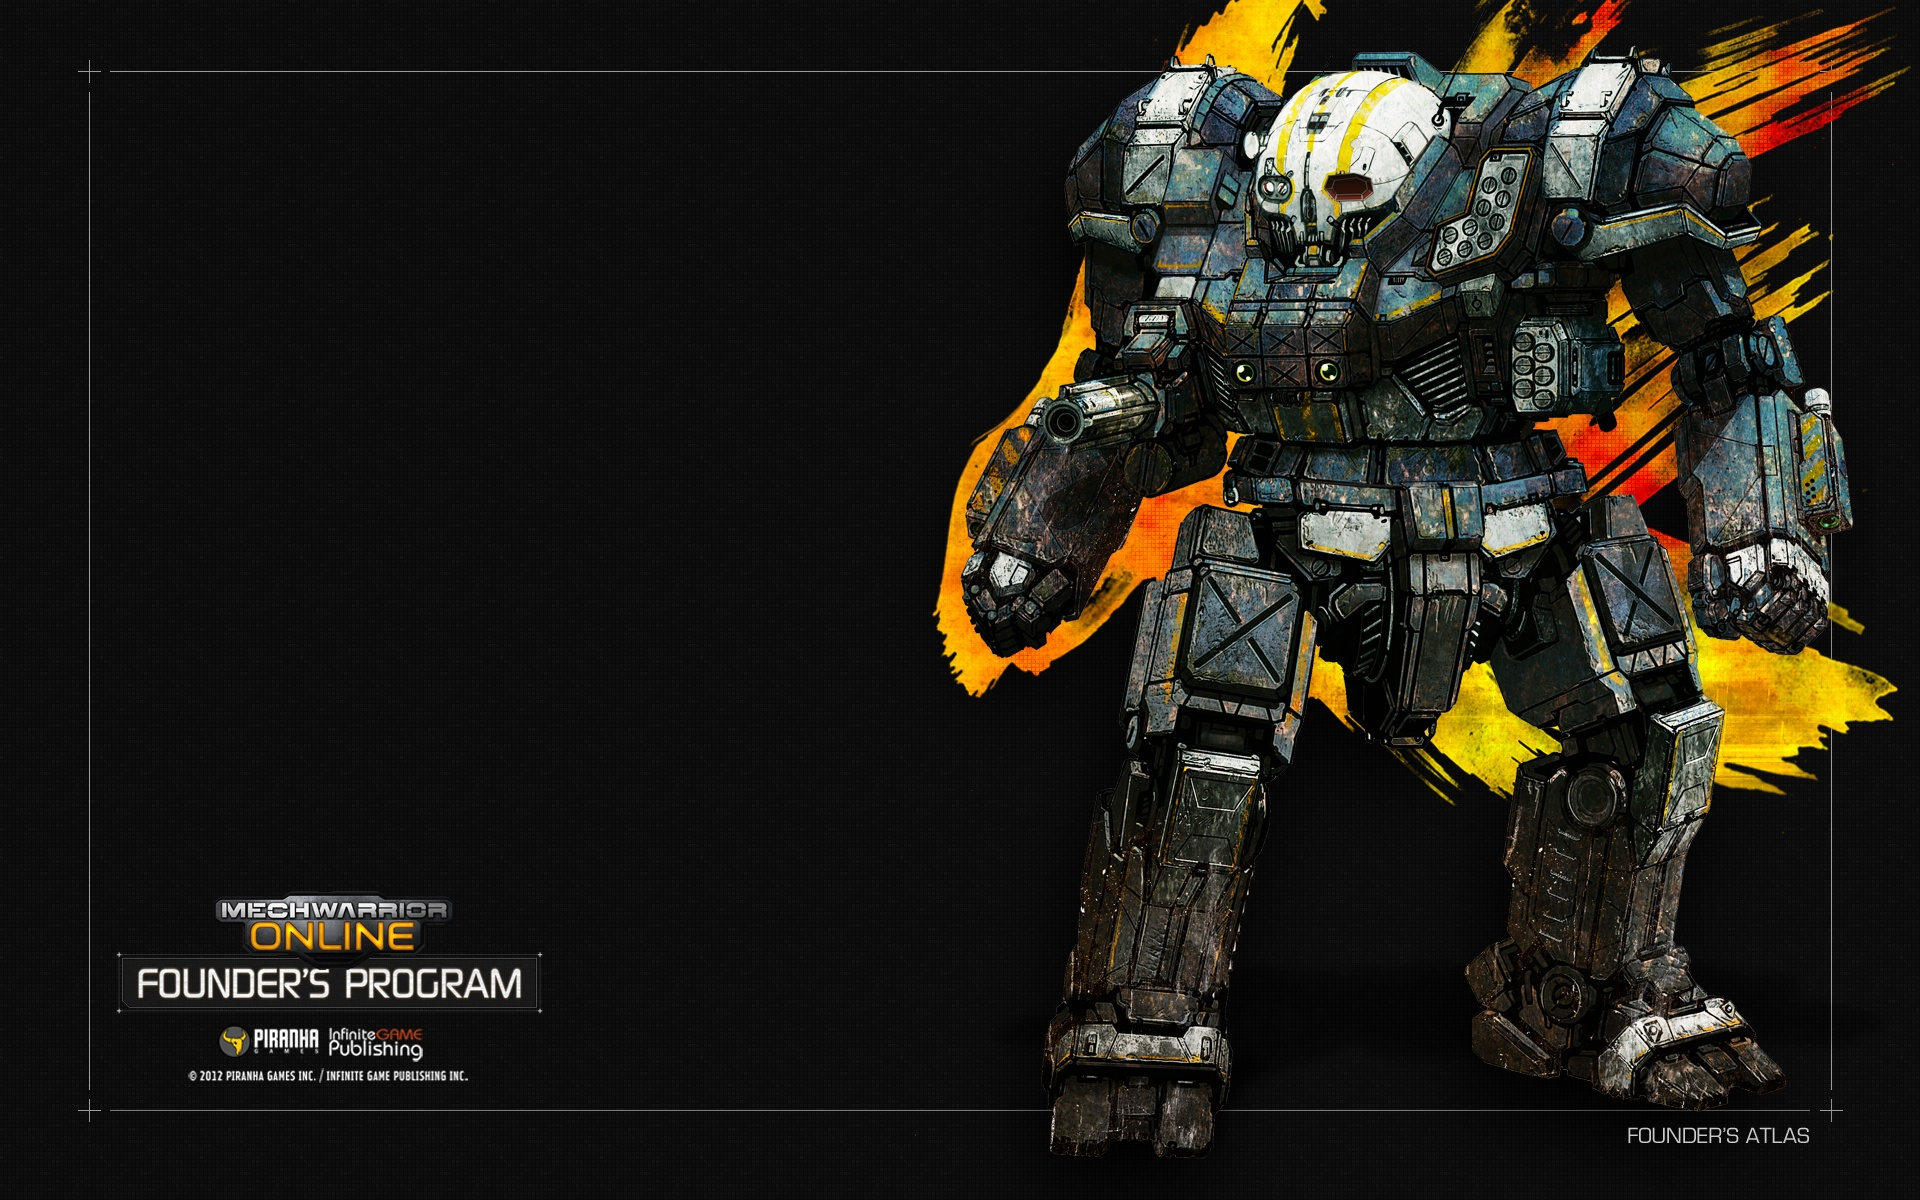 video games mechwarrior online wallpaper 1920 x 1200 Wallpaper 1920x1200